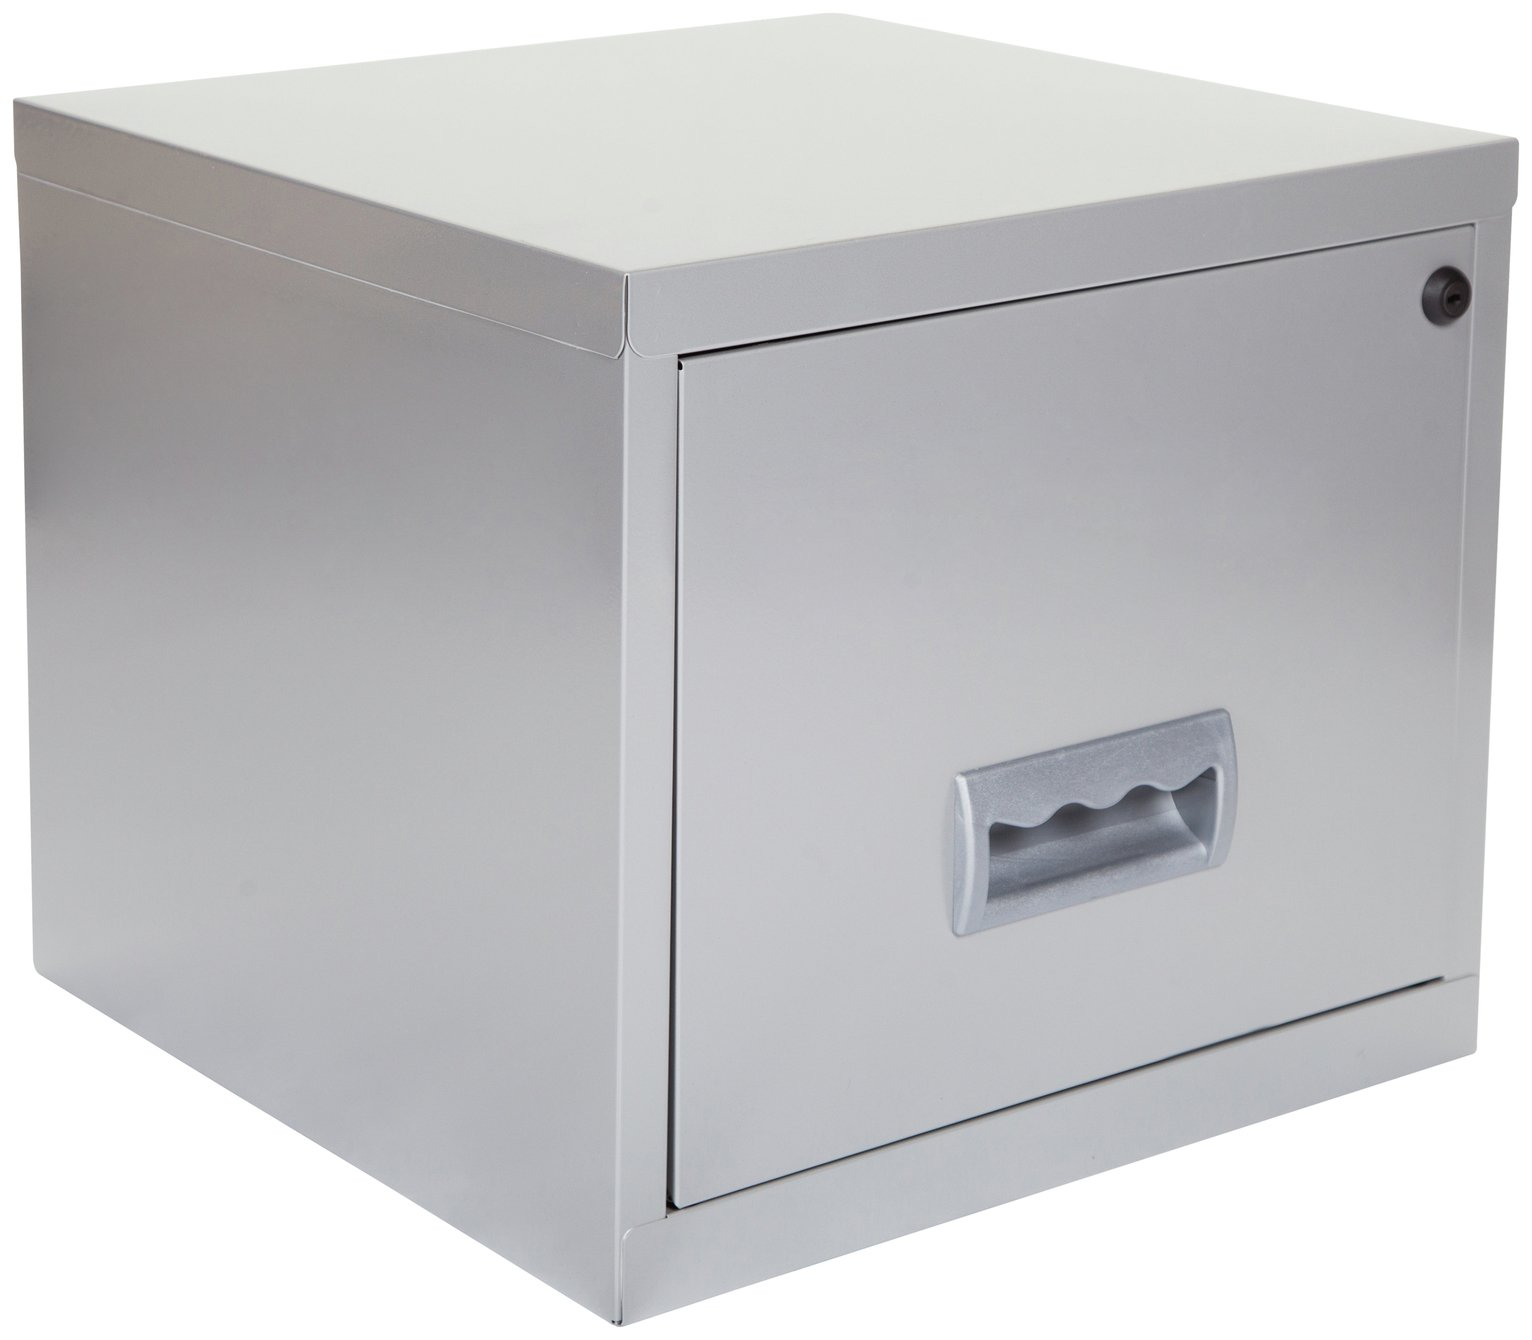 Pierre Henry 1 Drawer Filing Cabinet   Silver.